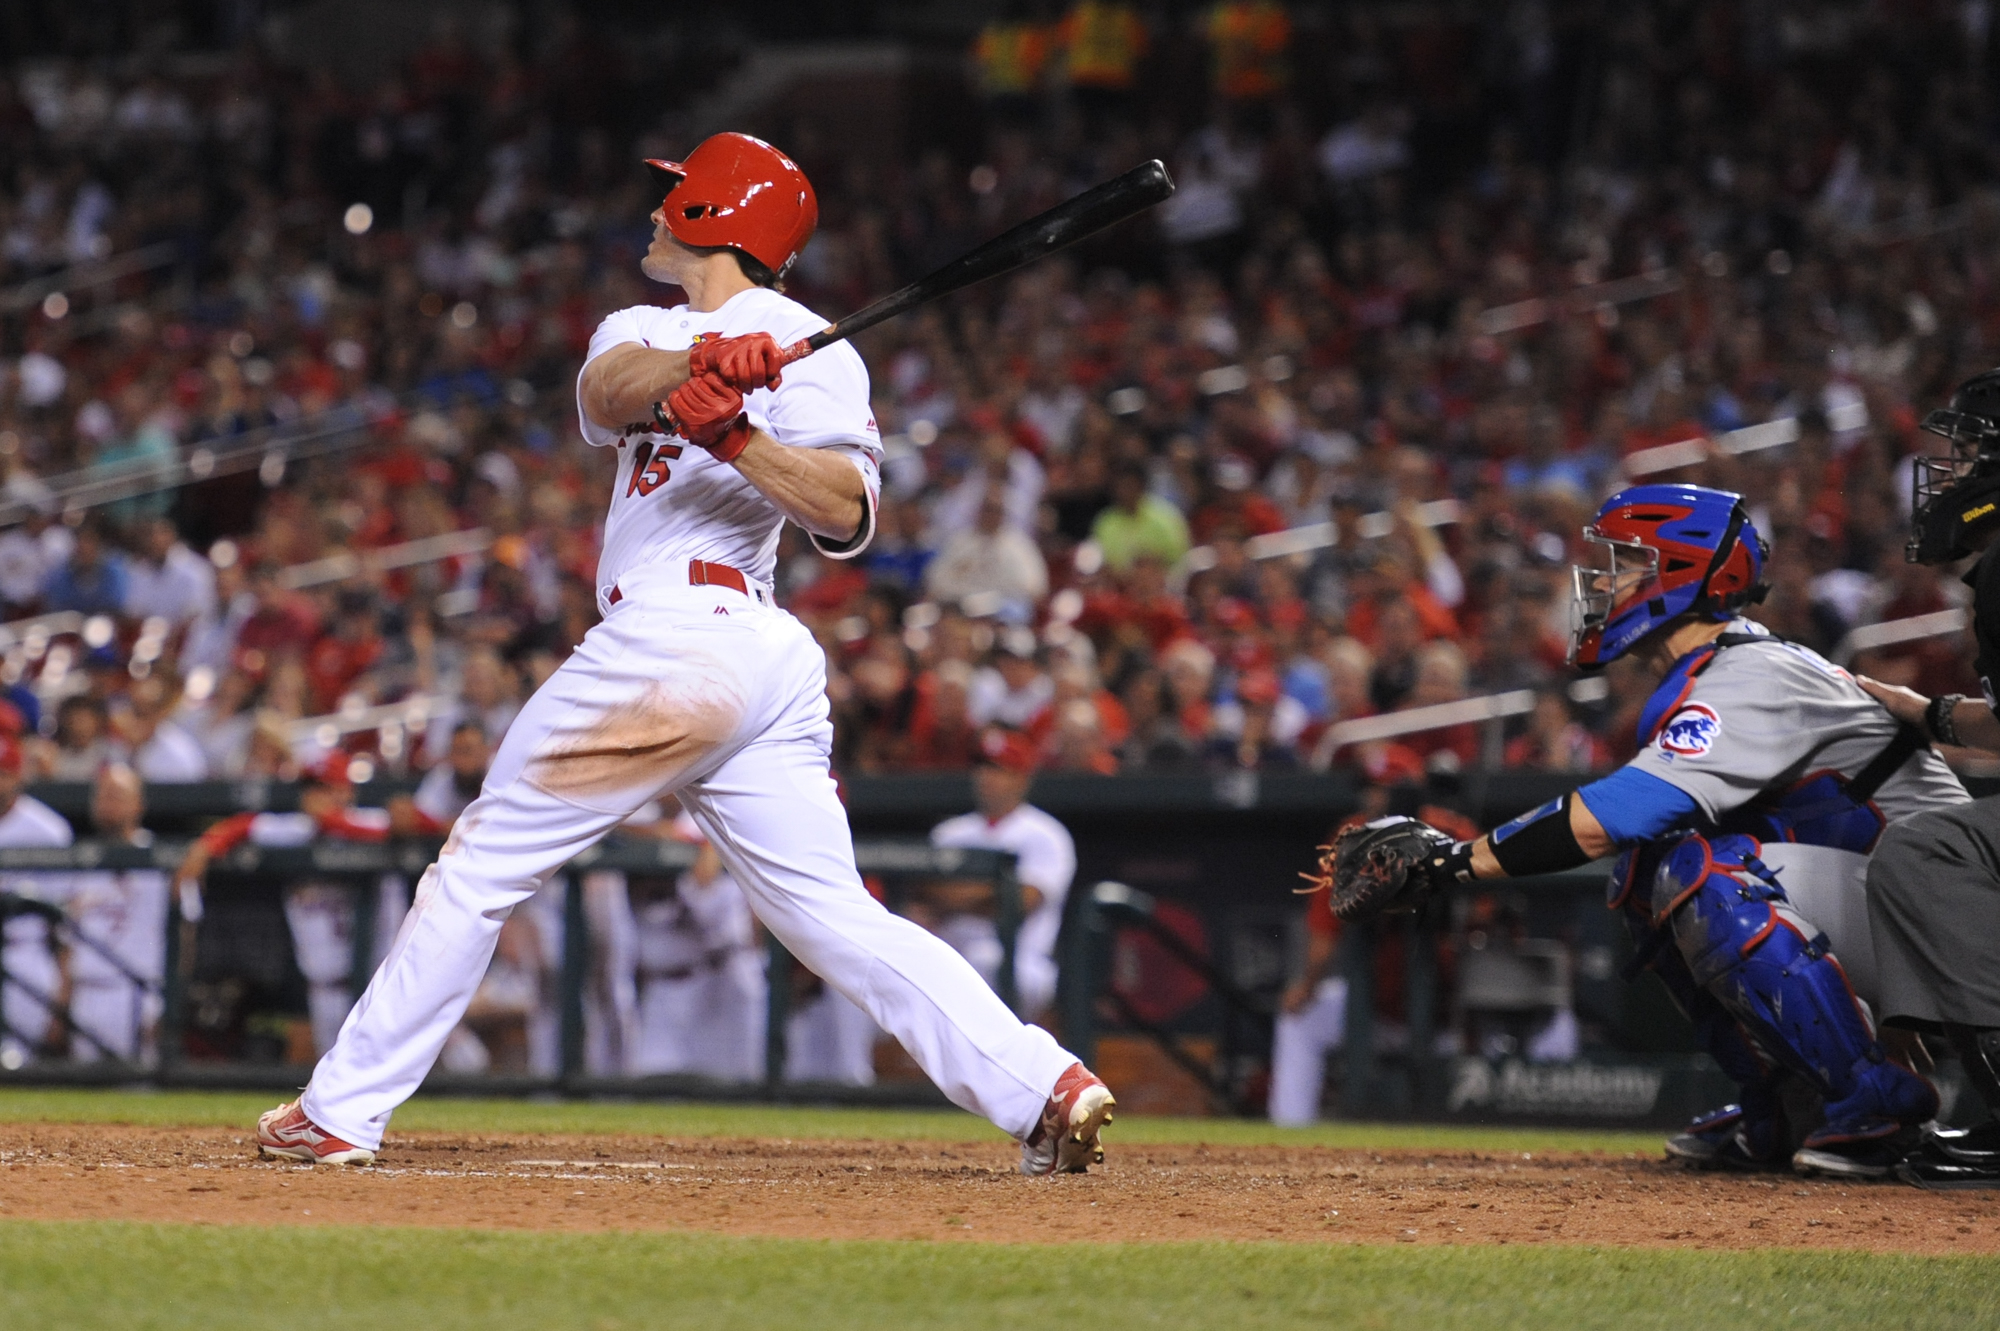 St. Louis Cardinals' Randal Grichuk (15) hits a walk-off home run in the ninth inning of a baseball game against the Chicago Cubs on Monday, May 23, 2016, in St. Louis. The Cardinals defeated the Cubs 4-3. (AP Photo/Michael Thomas)